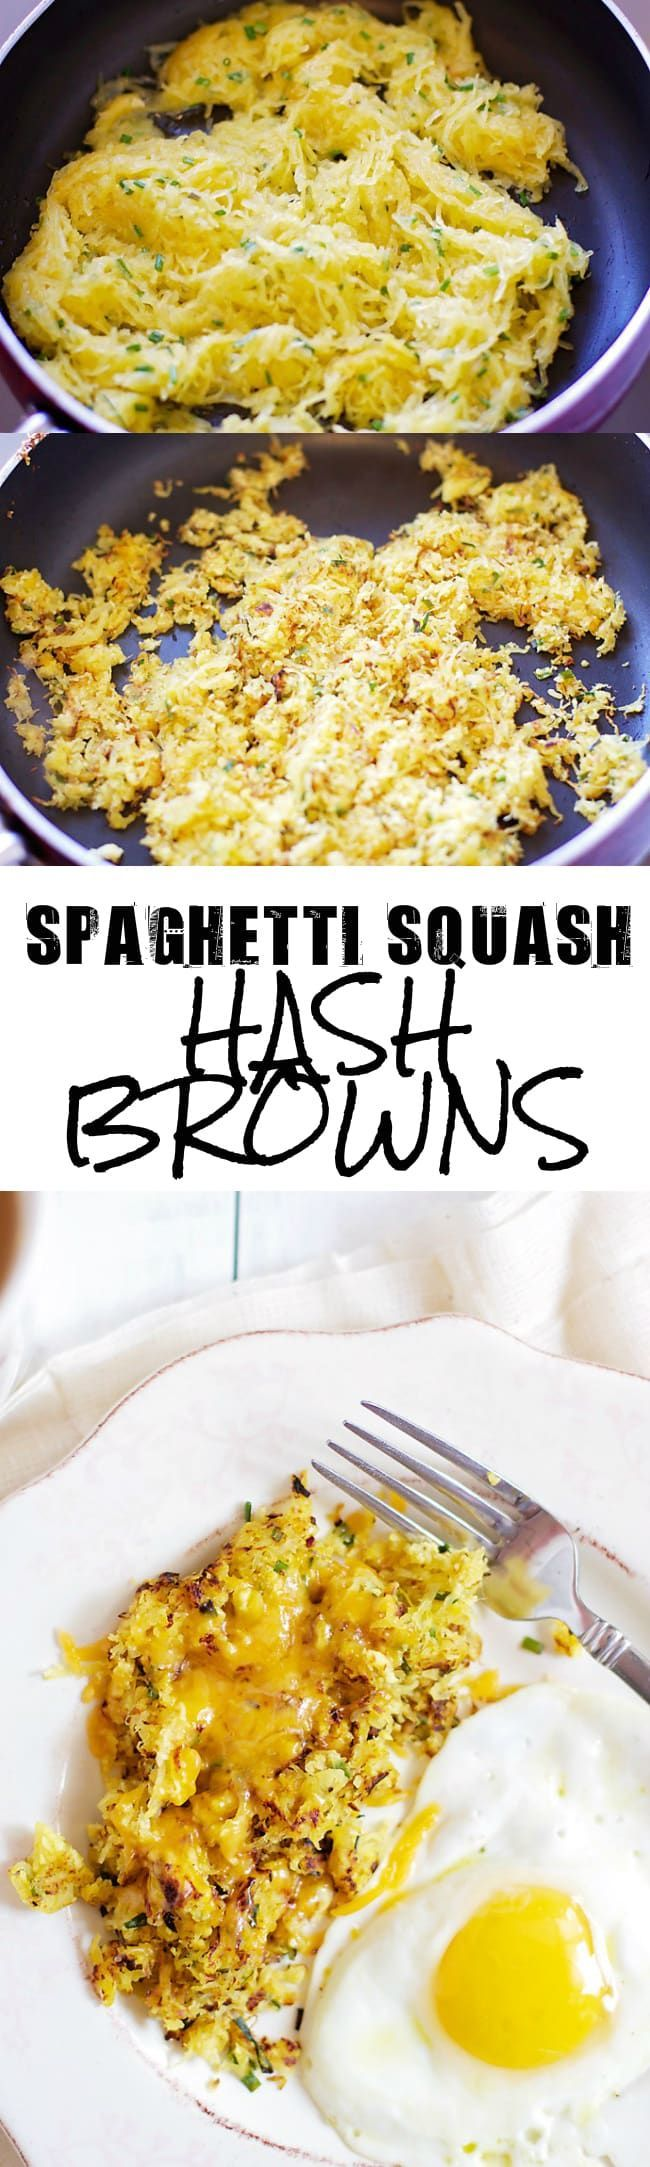 Spaghetti Squash Hash Browns- a great way to use up leftover spaghetti squash!! │ bbritnell.com